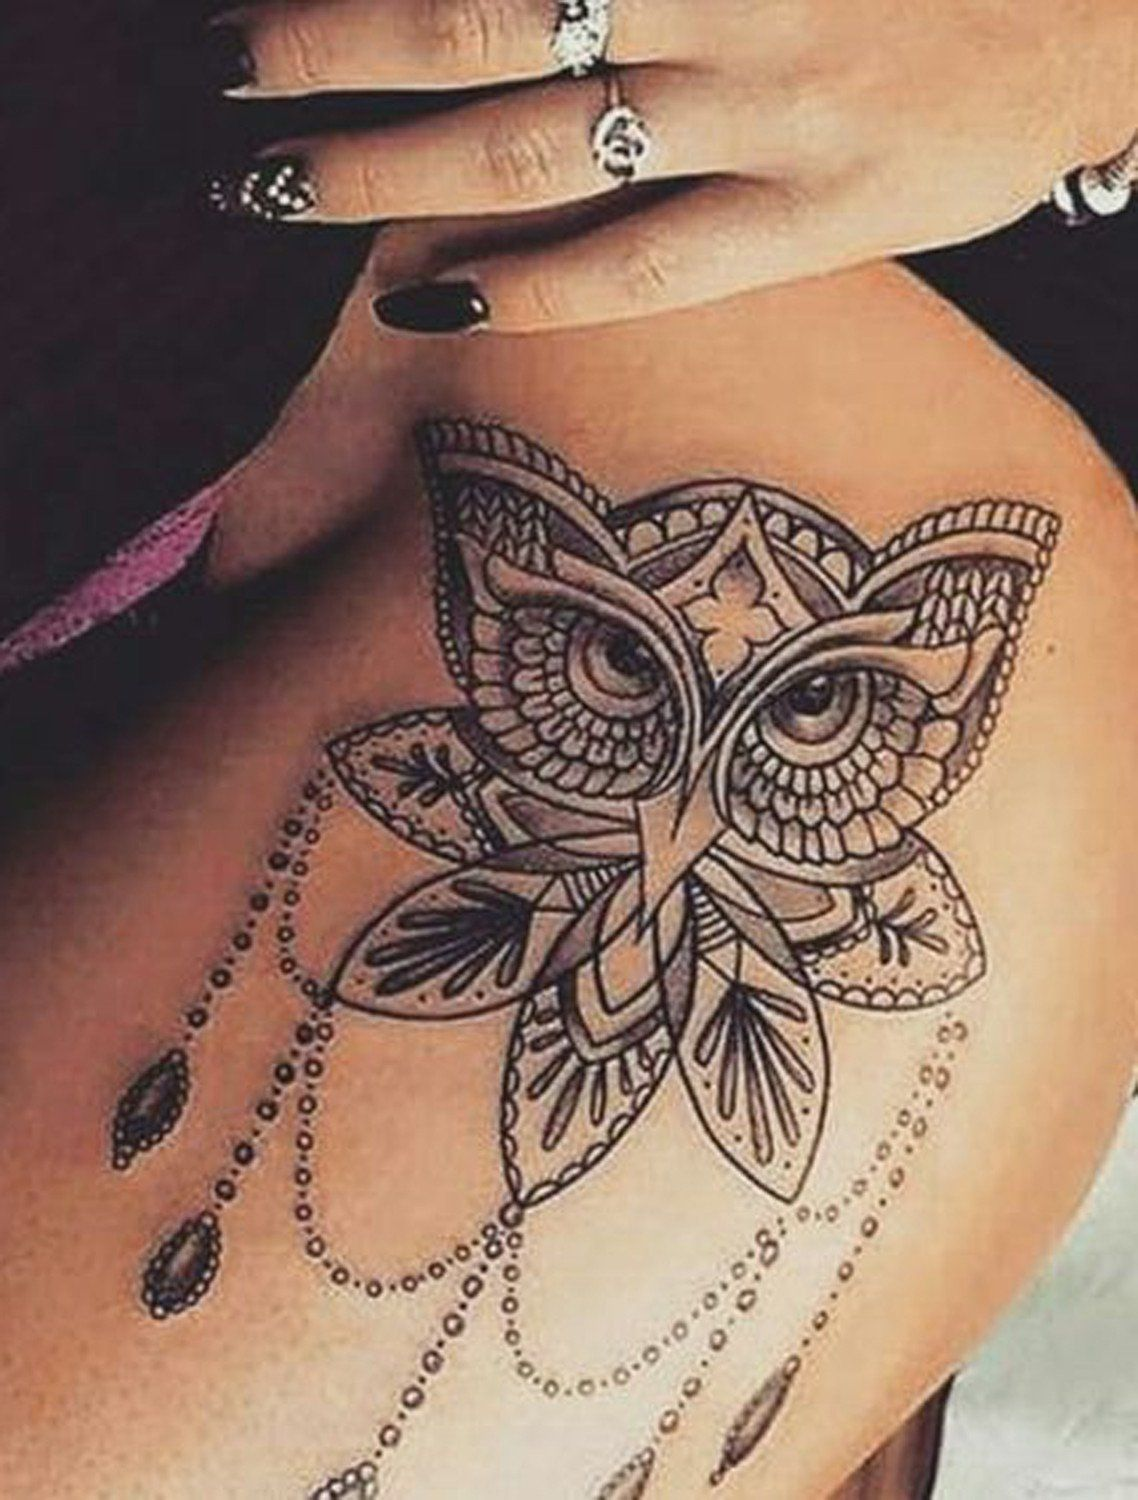 319b55f7a Lotus Owl Hip Tattoo Ideas for Women - Geometric Snowy Bird Thigh Leg Tat -  Black Nail Art 2017 - MyBodiArt.com